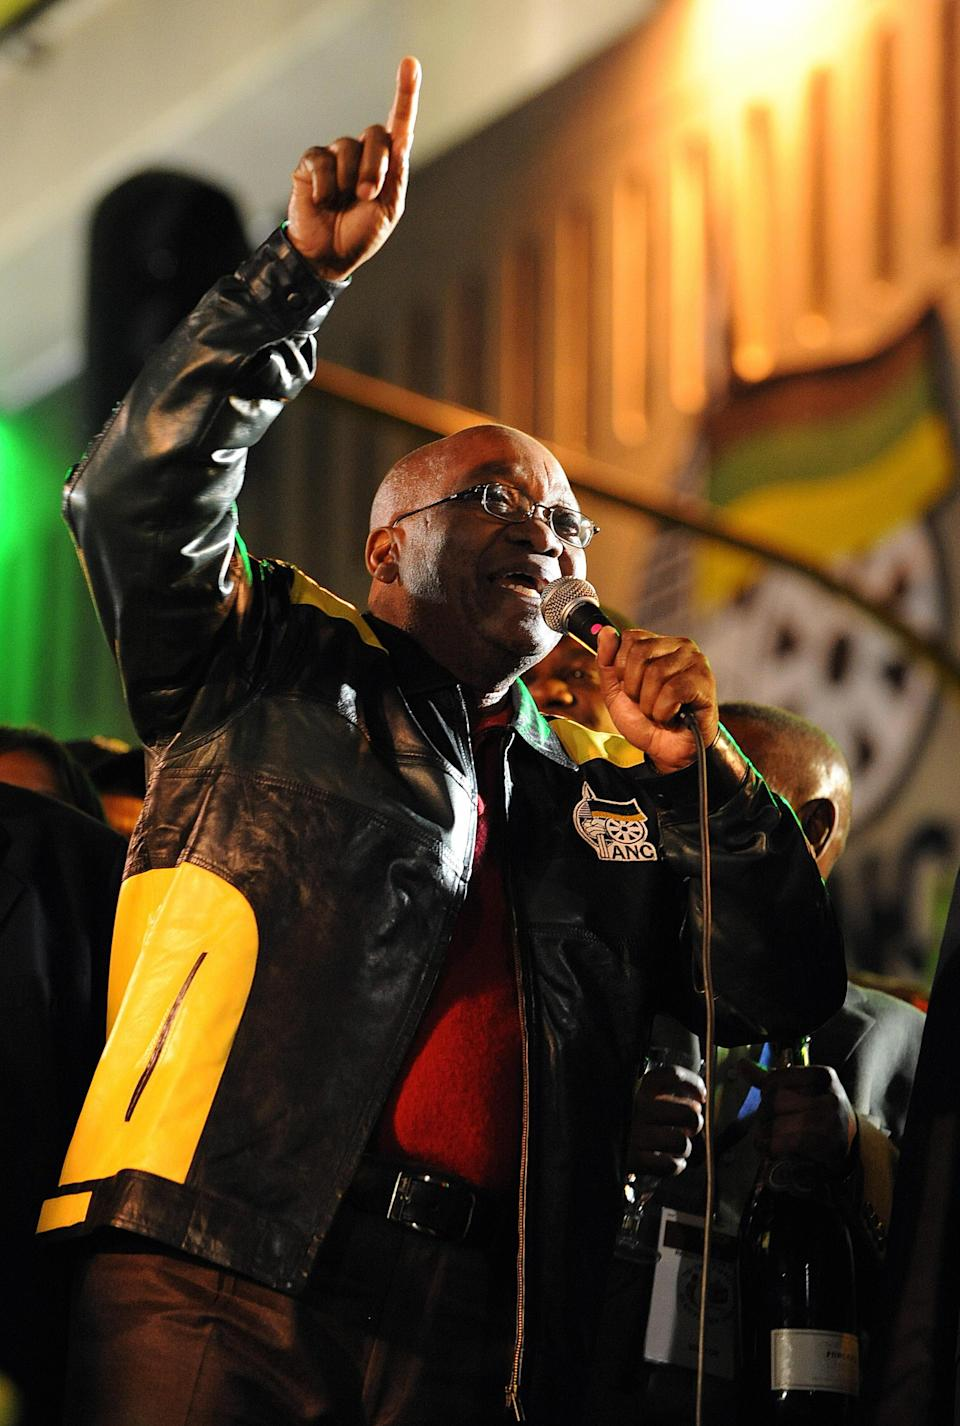 Former President of South Africa, Jacob Zuma, addresses a crowd in Johannesburg, April 23, 2009.